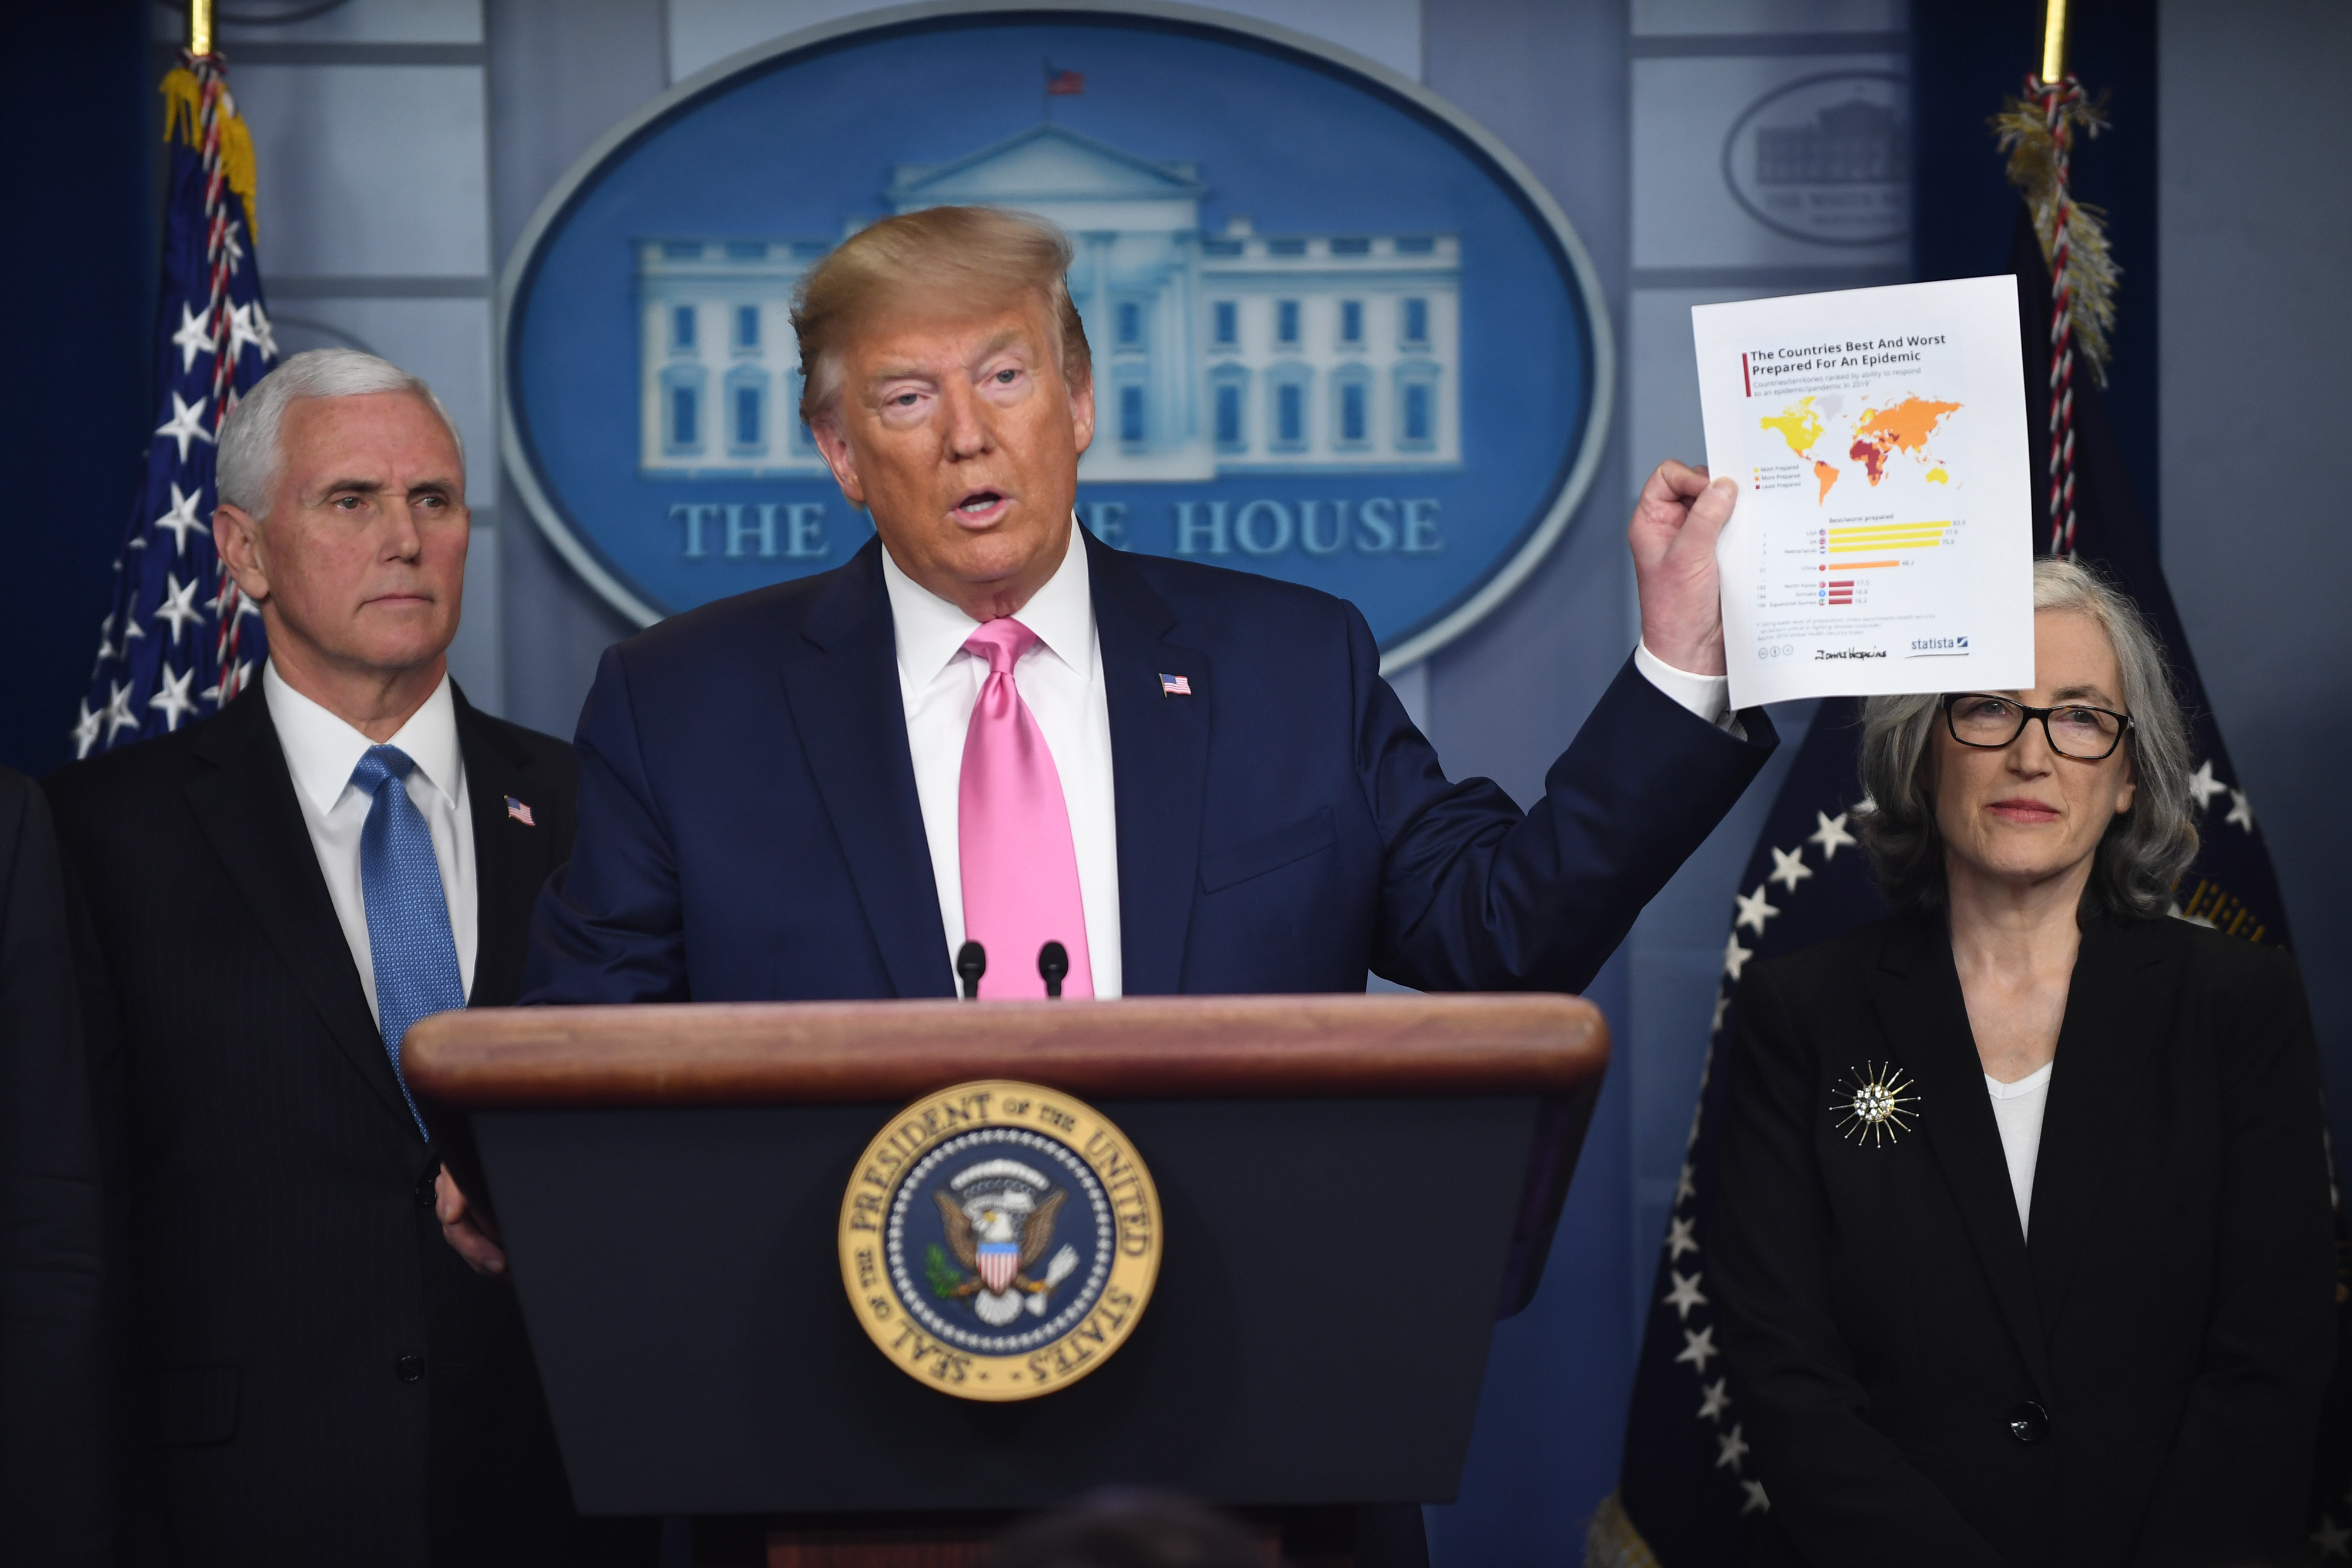 President Donald Trump holds up a a map showing the United States as No. 1 in preparedness during a press briefing on the coronavirus at the White House on Feb. 26, 2020.